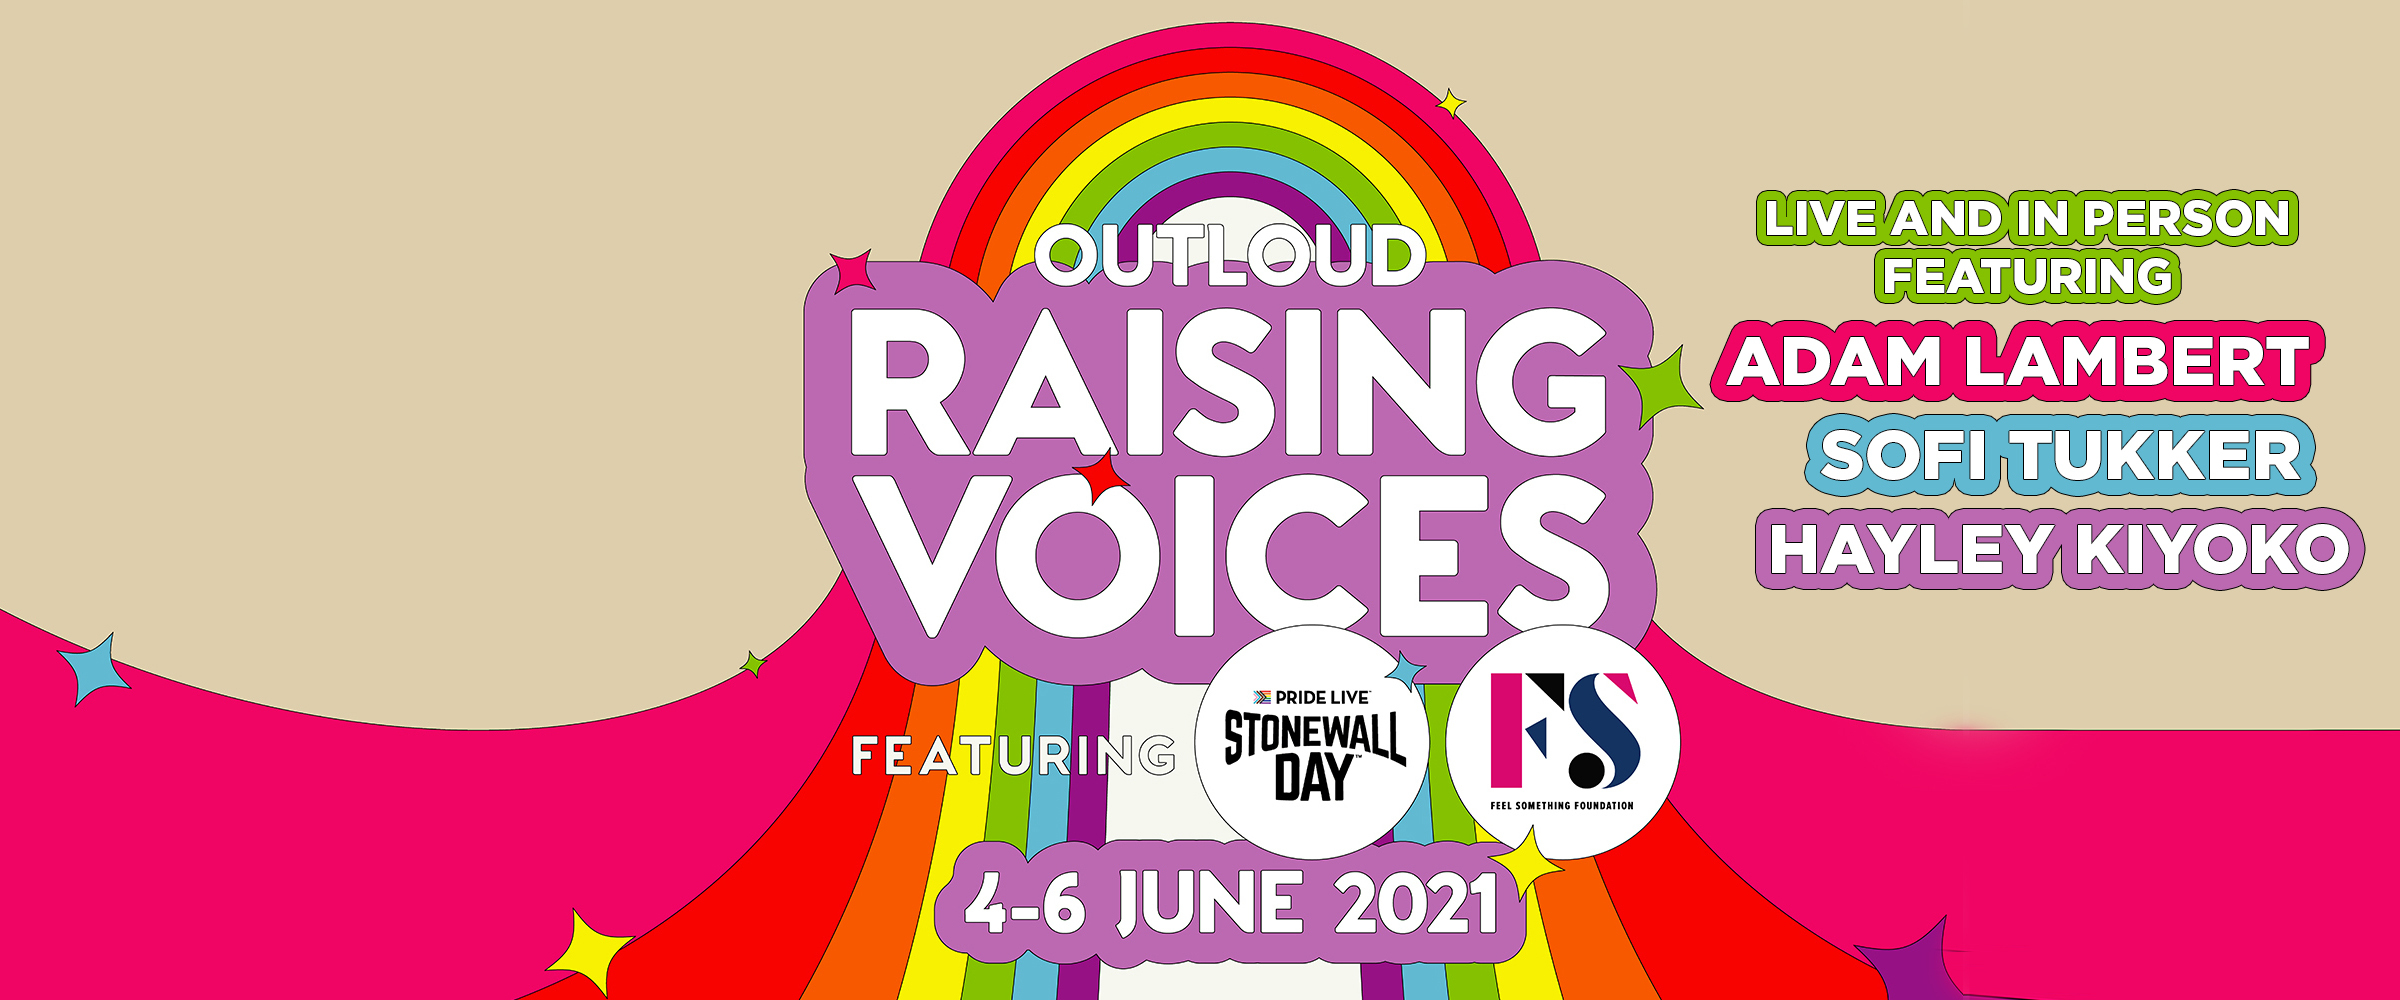 OUTLOUD: Raising Voices